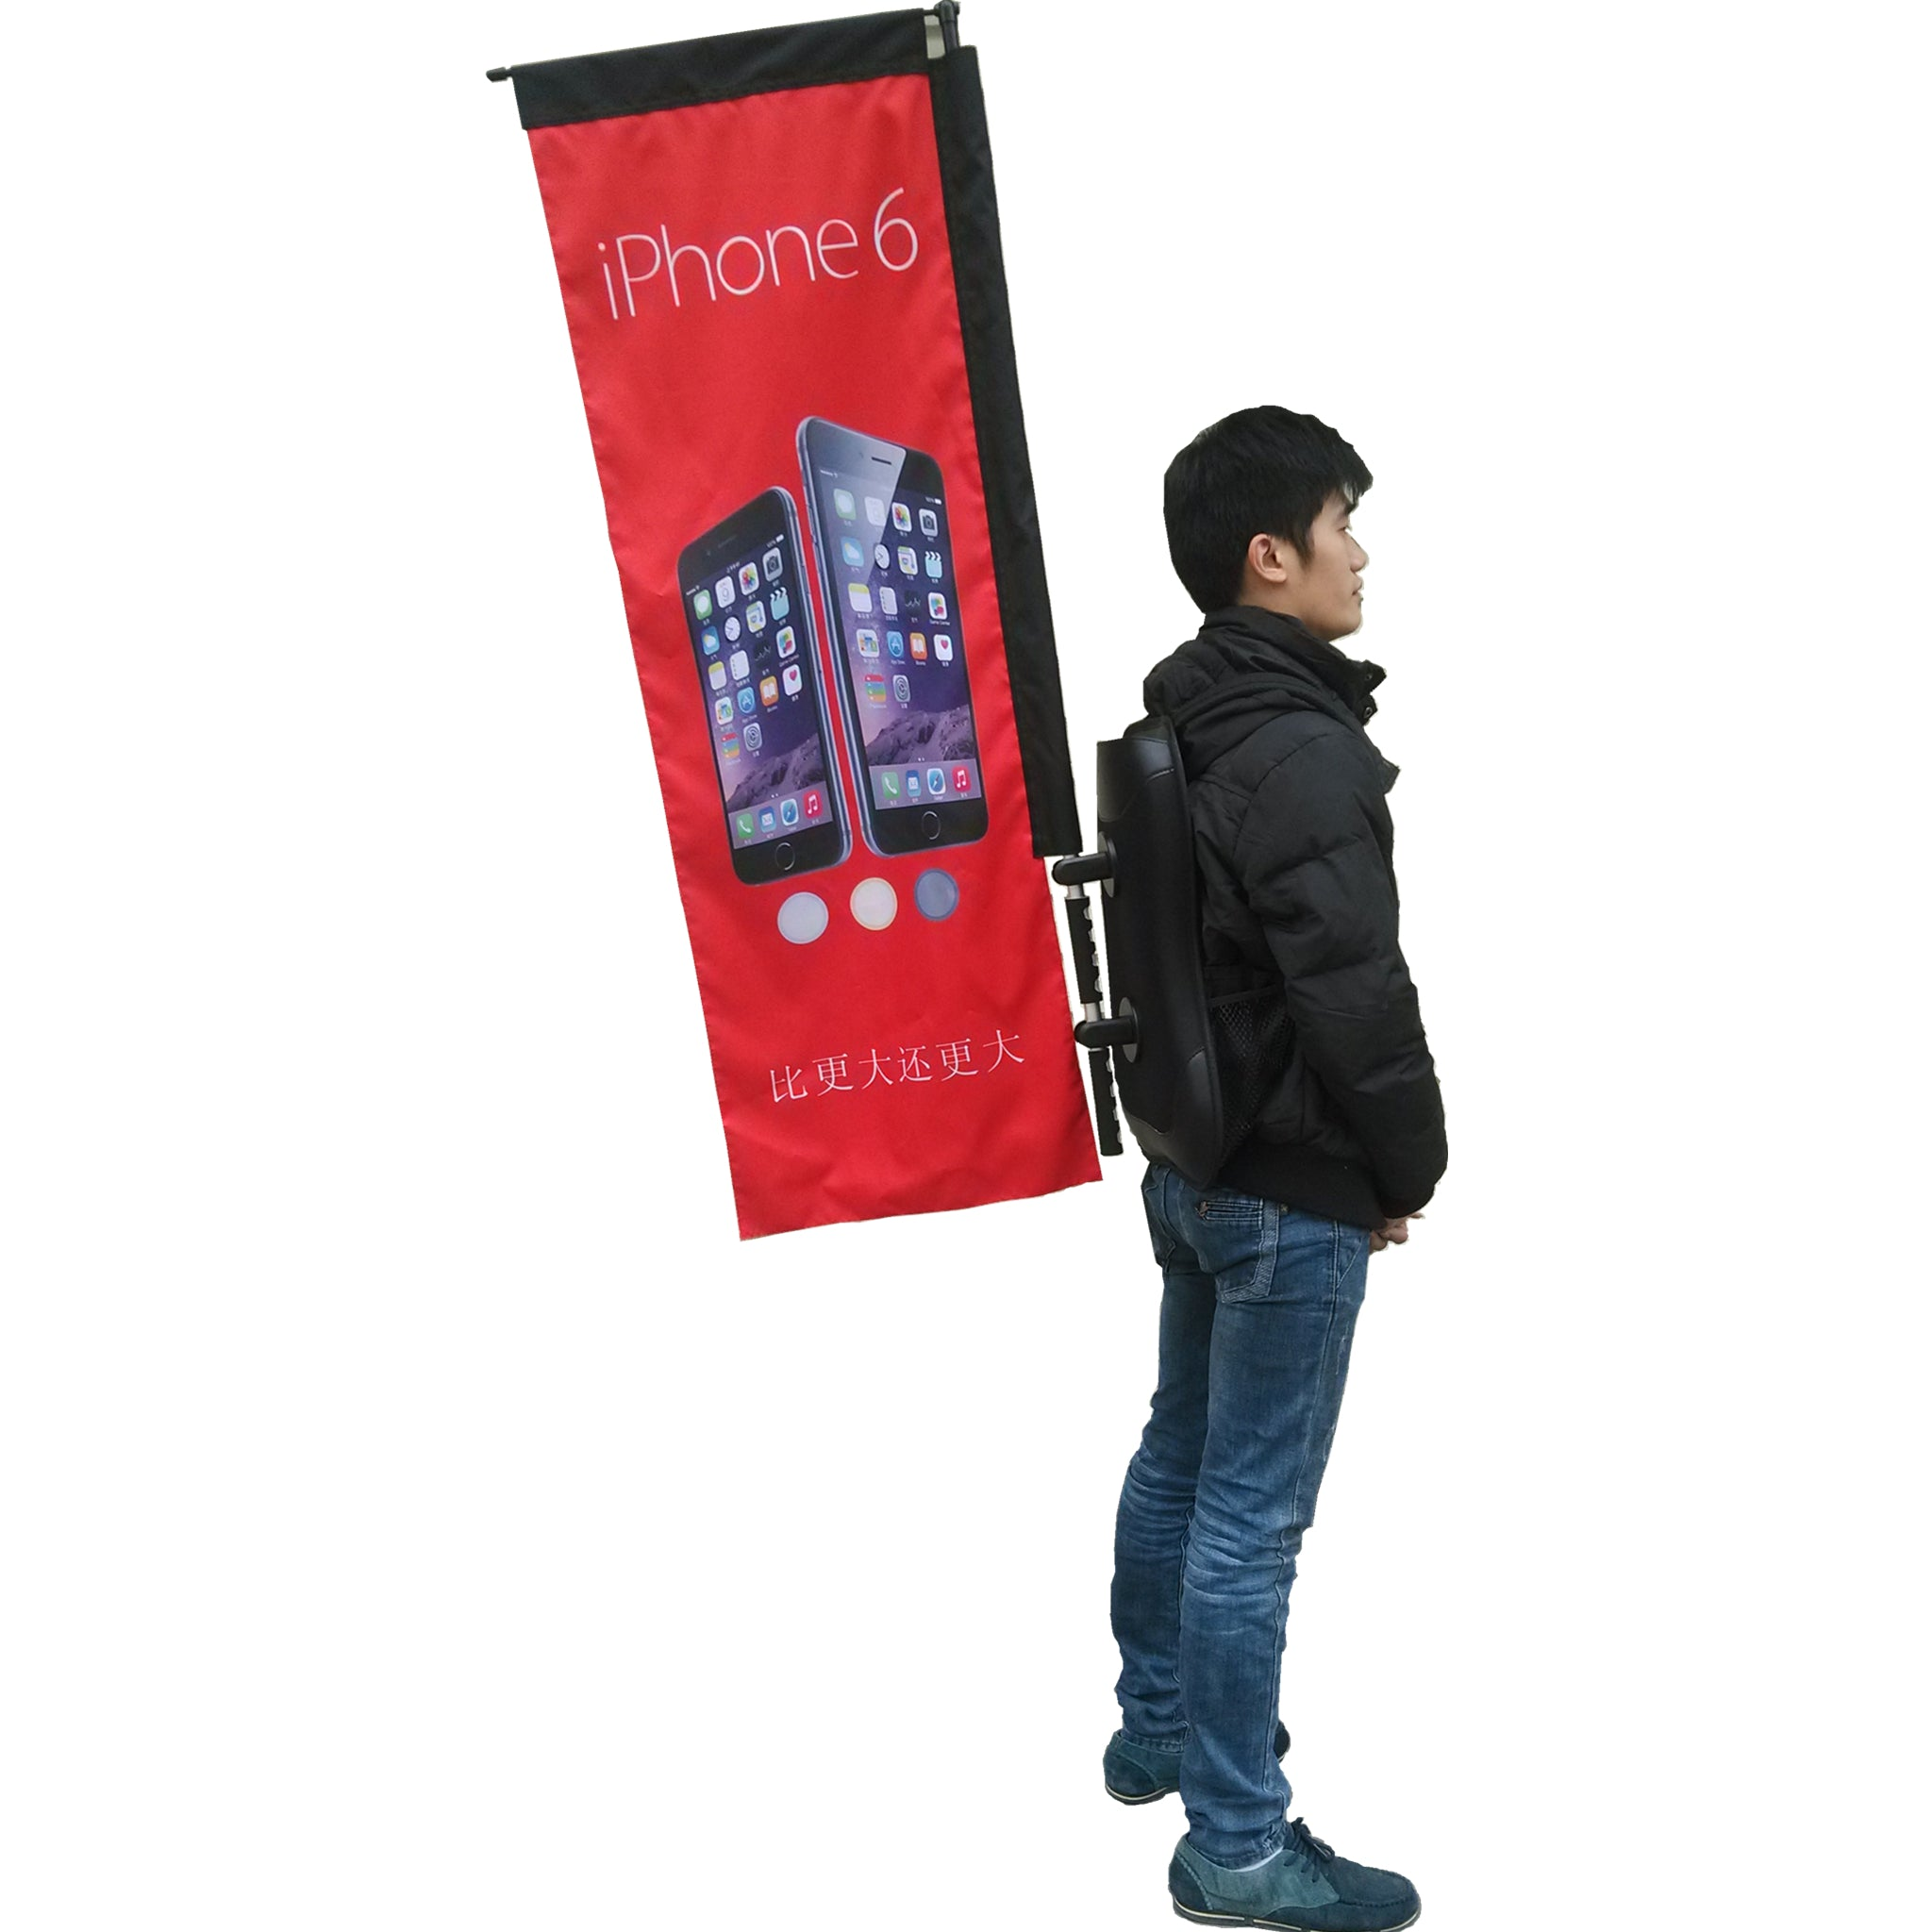 Banner Flags Sturdy Installed On Corresponding Backpack For Outdoor Display